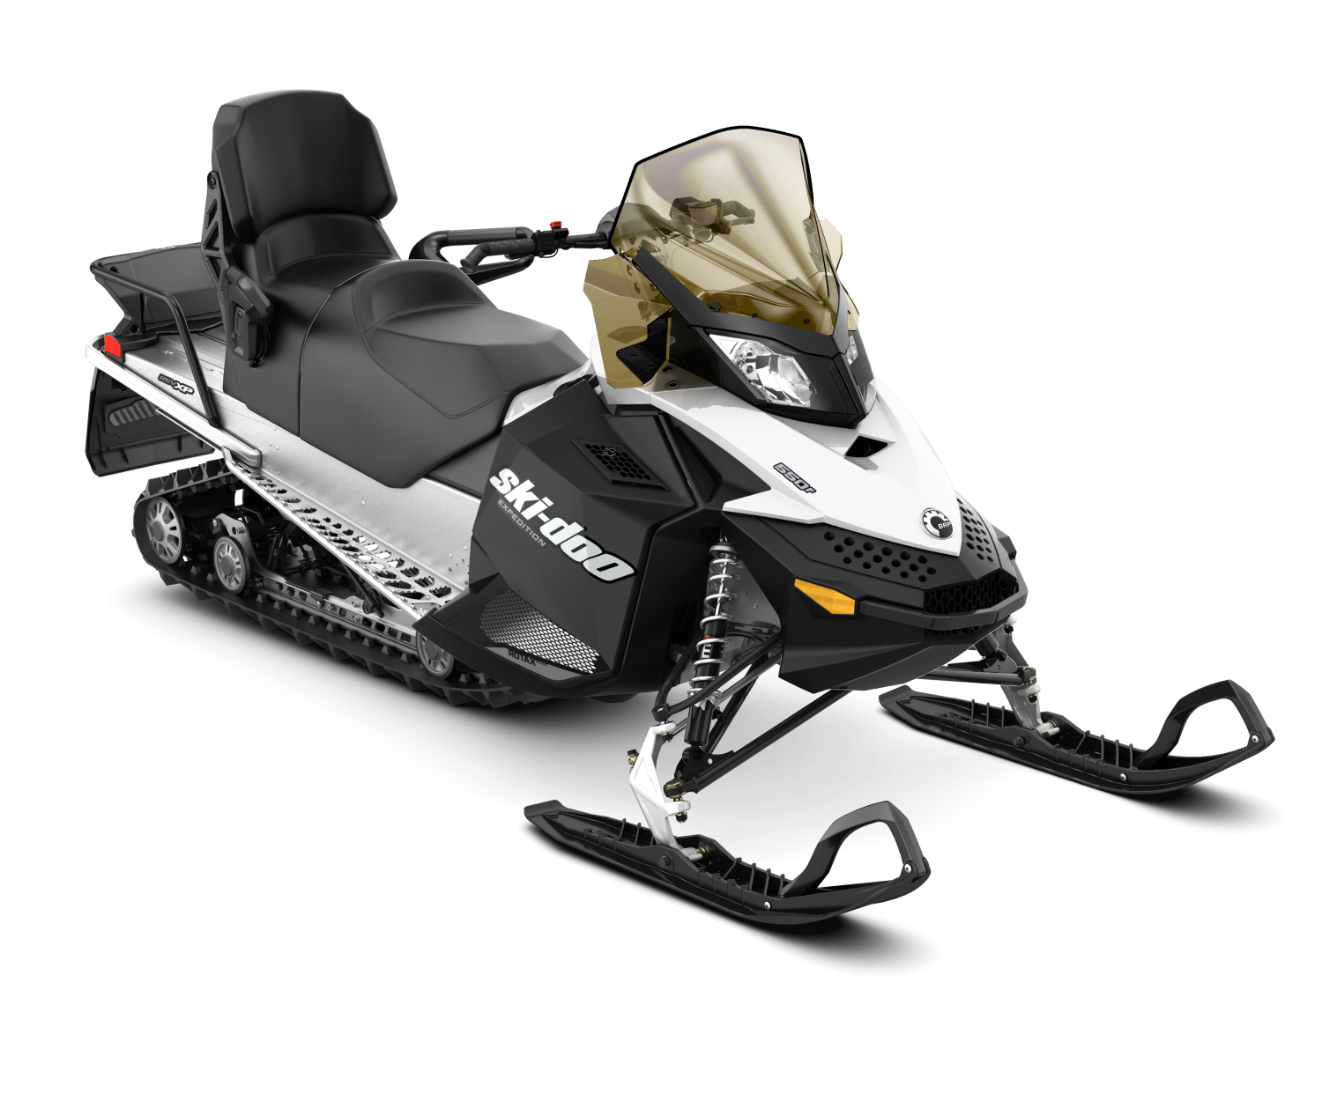 2018 Ski-Doo Expedition Sport 550F in Presque Isle, Maine